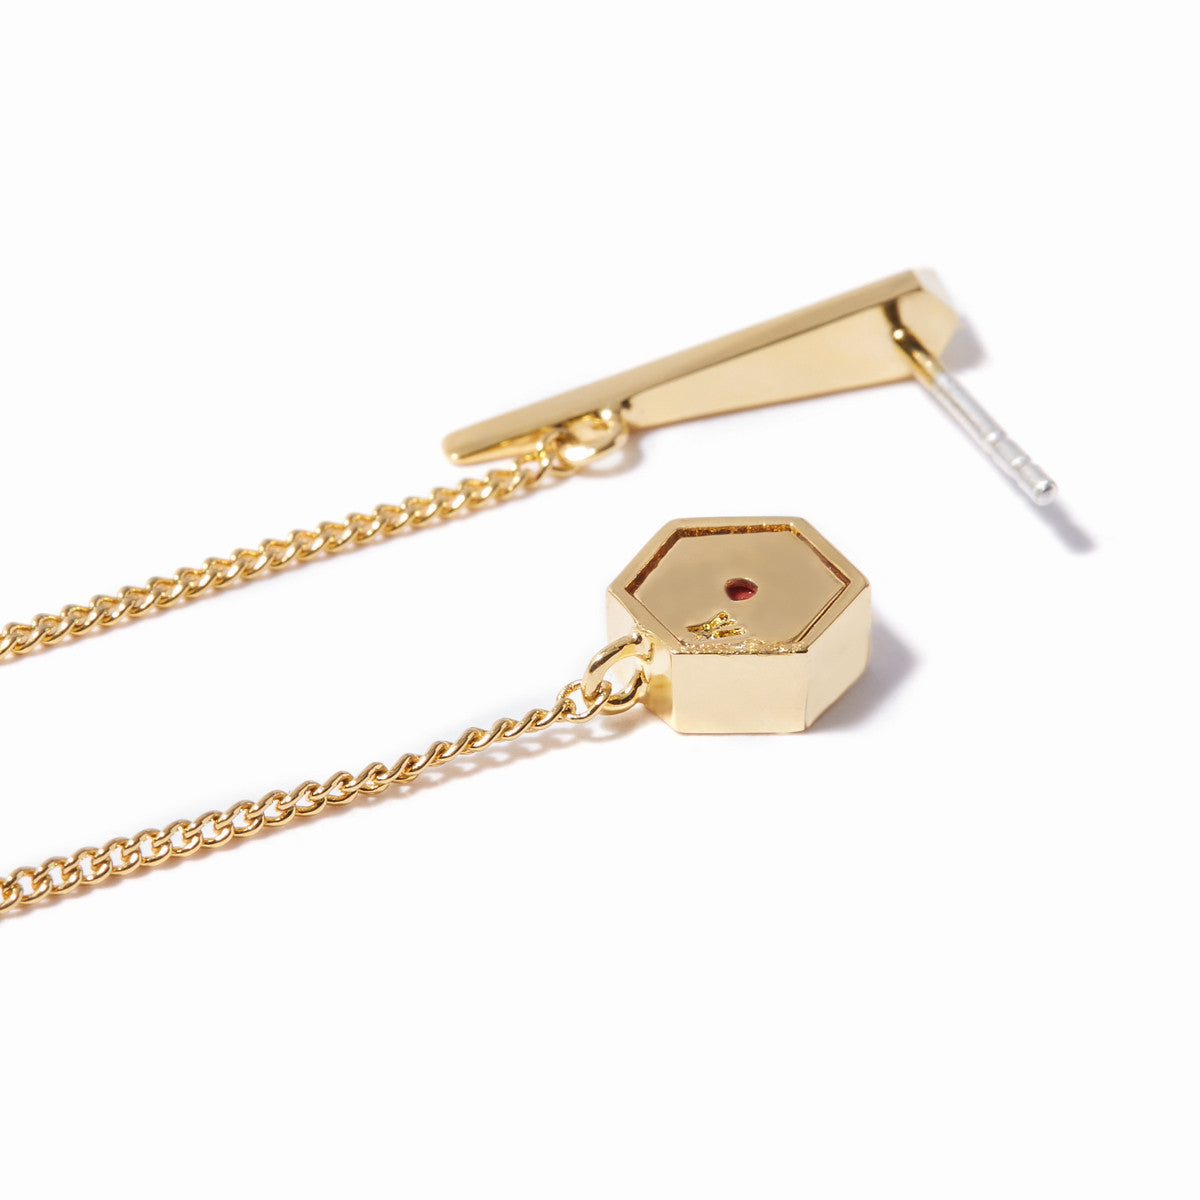 Vide Long Chain Earrings - Gold